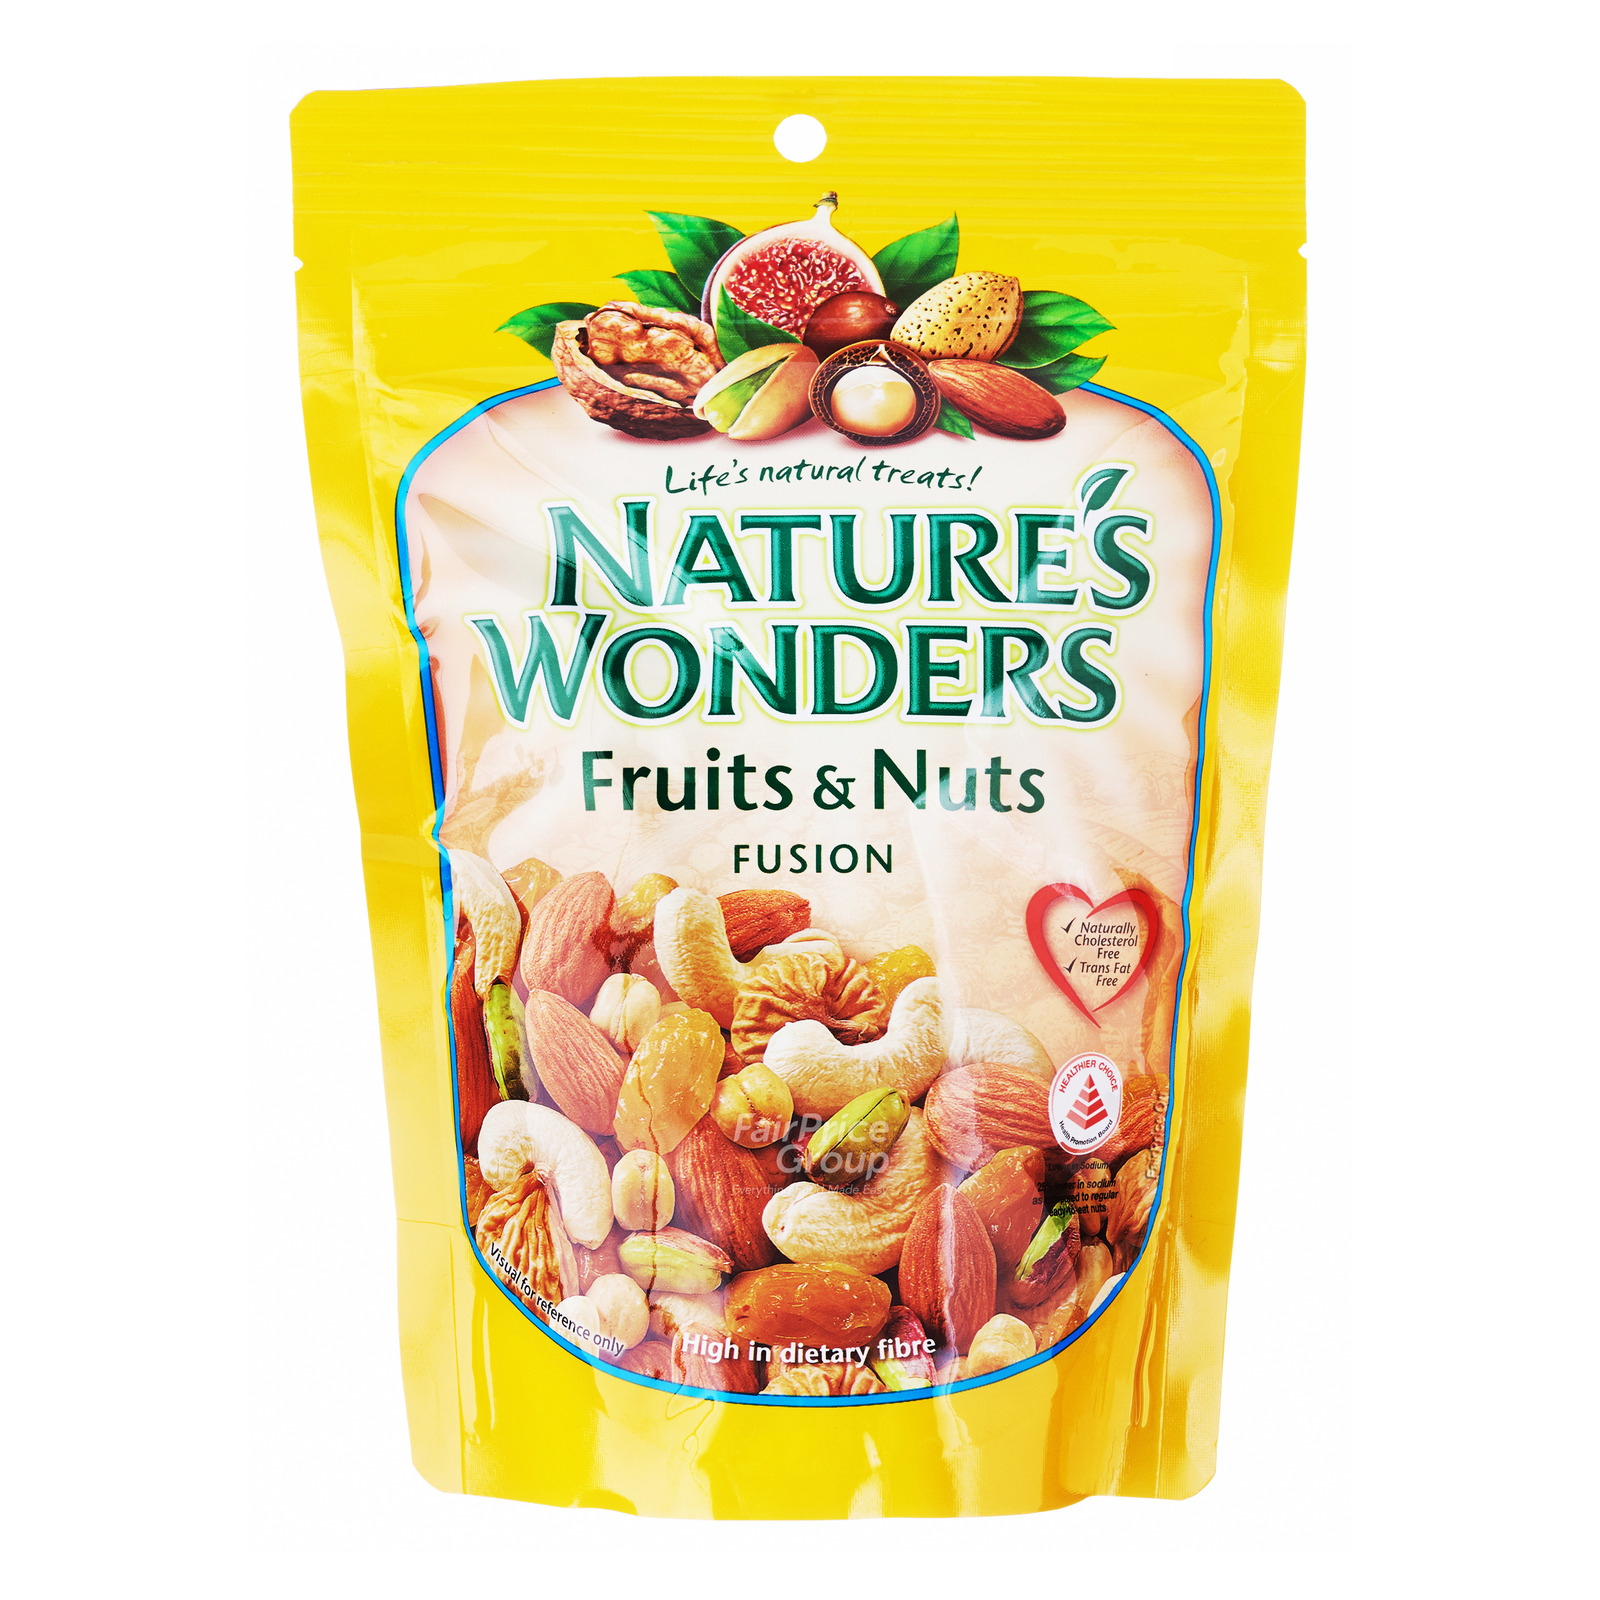 NATURES WONDERS Fruits & Nuts Fusion 270g